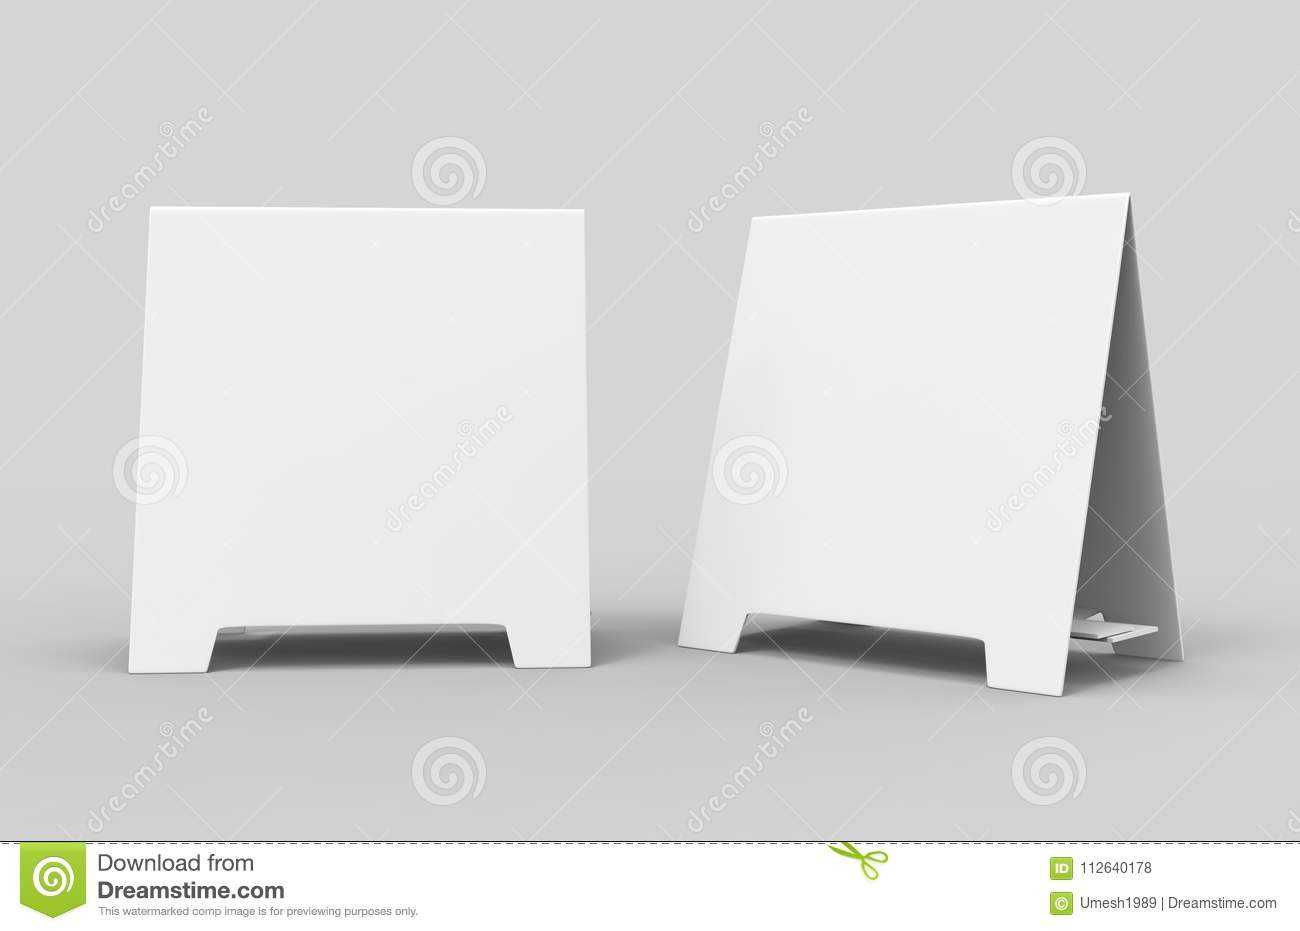 Tablet Tent Card Talkers Promotional Menu Card White Blank Intended For Blank Tent Card Template